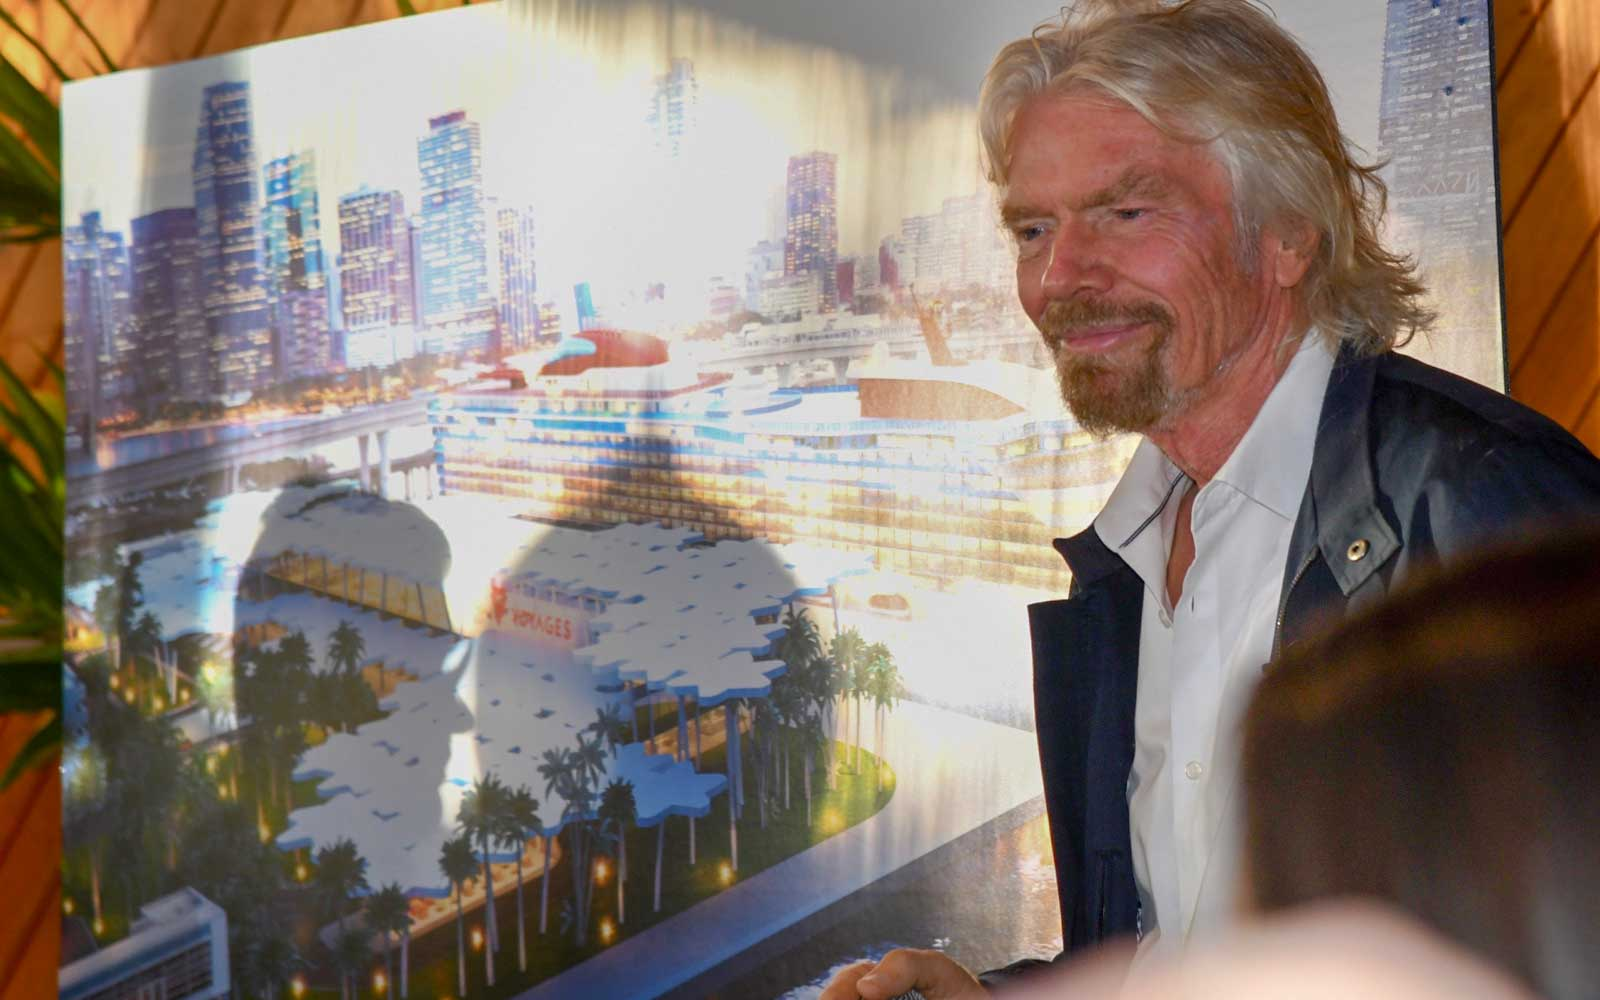 Richard Branson's New Miami Cruise Terminal Looks So Nice You Might Not Want to Leave Port